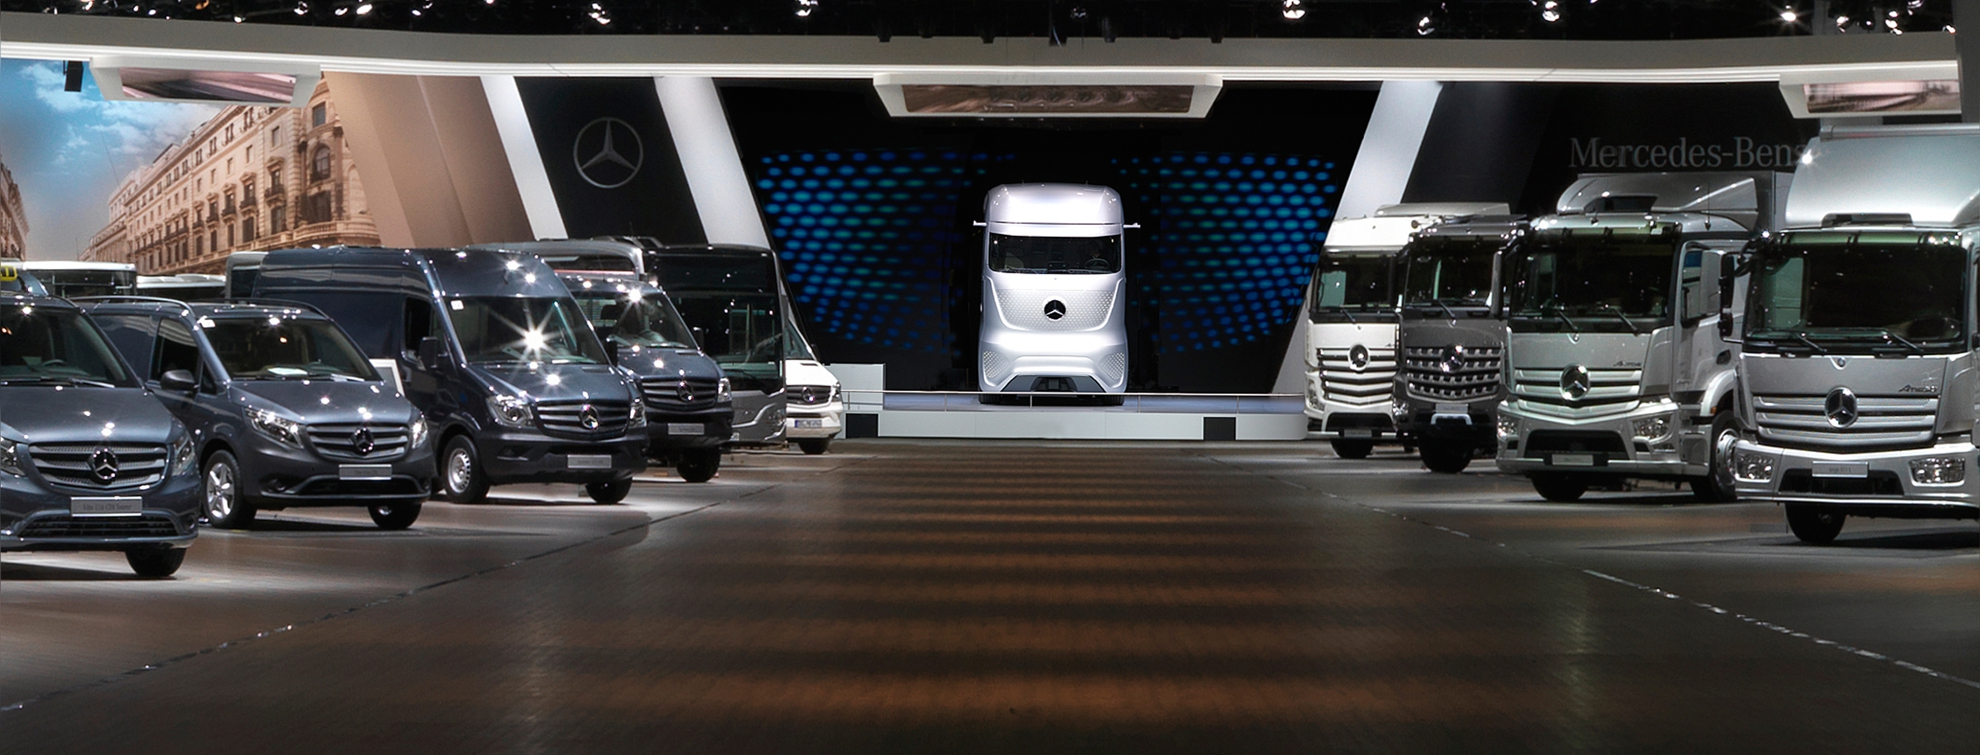 Hanover auto show germany mercedes benz trucks - Mercedes car show ...